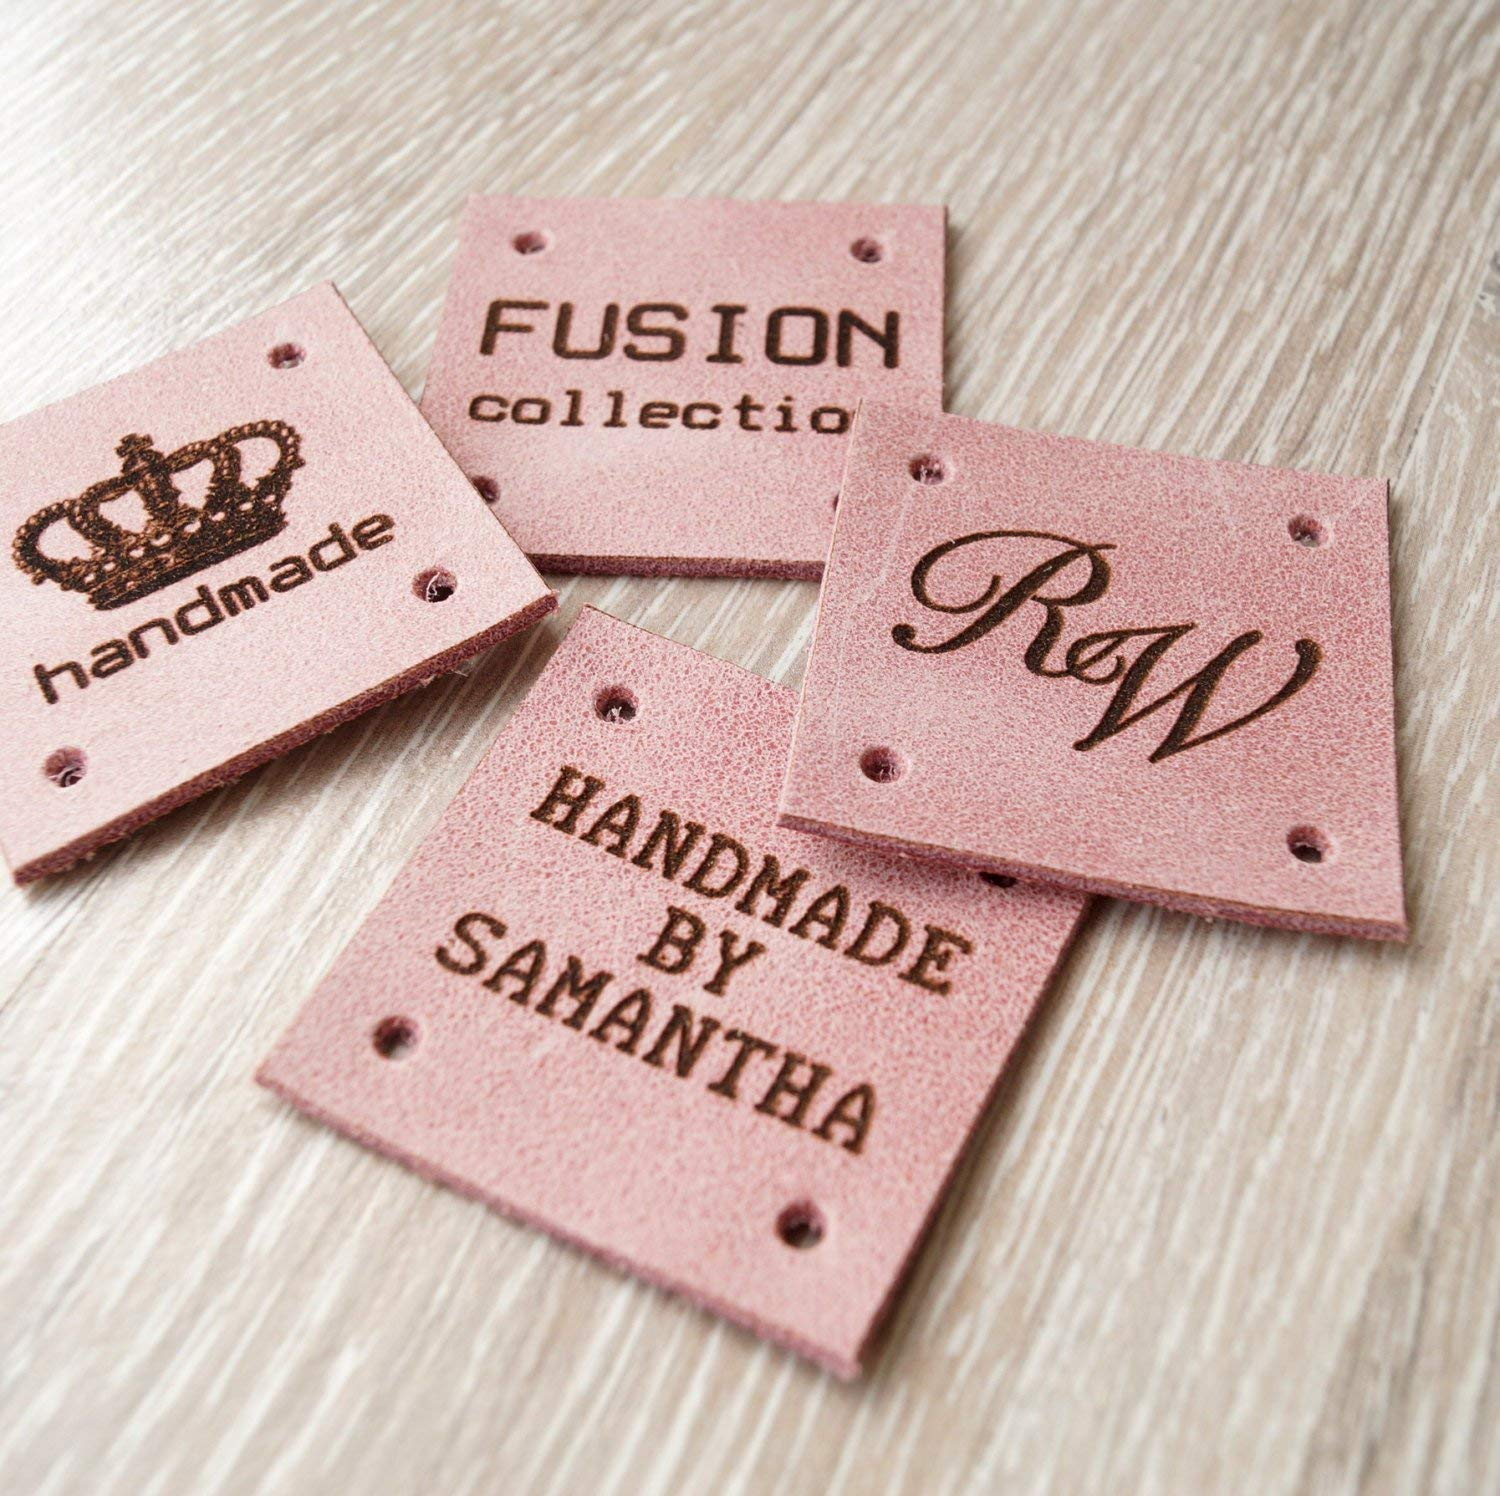 a79126c7a944 Amazon.com: Leather sewing tags, custom labels, personalized leather ...